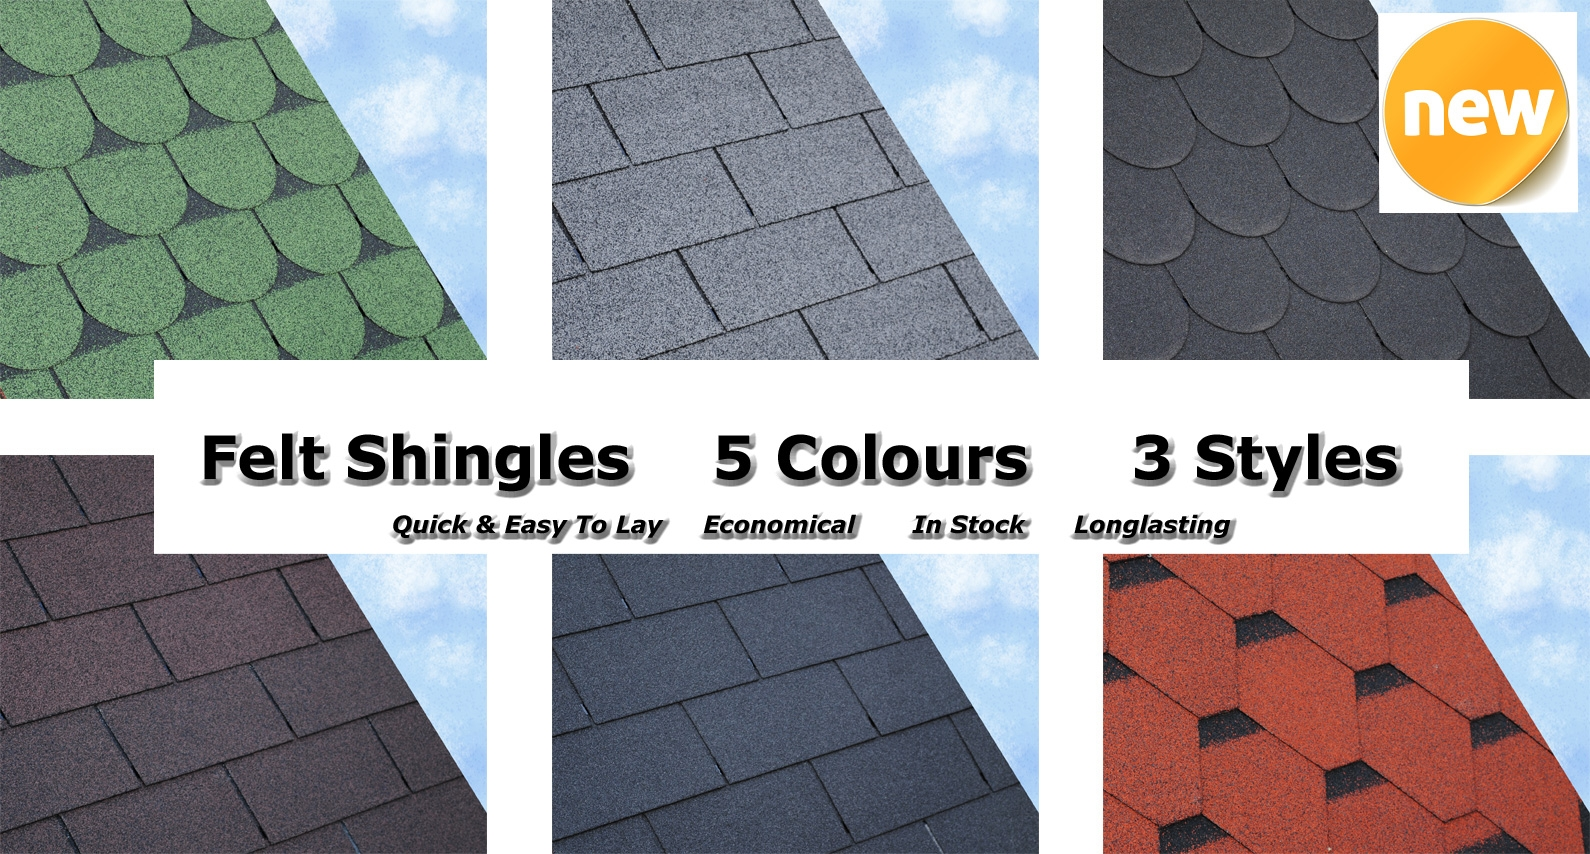 Felt Shingles from About Roofing Supplies